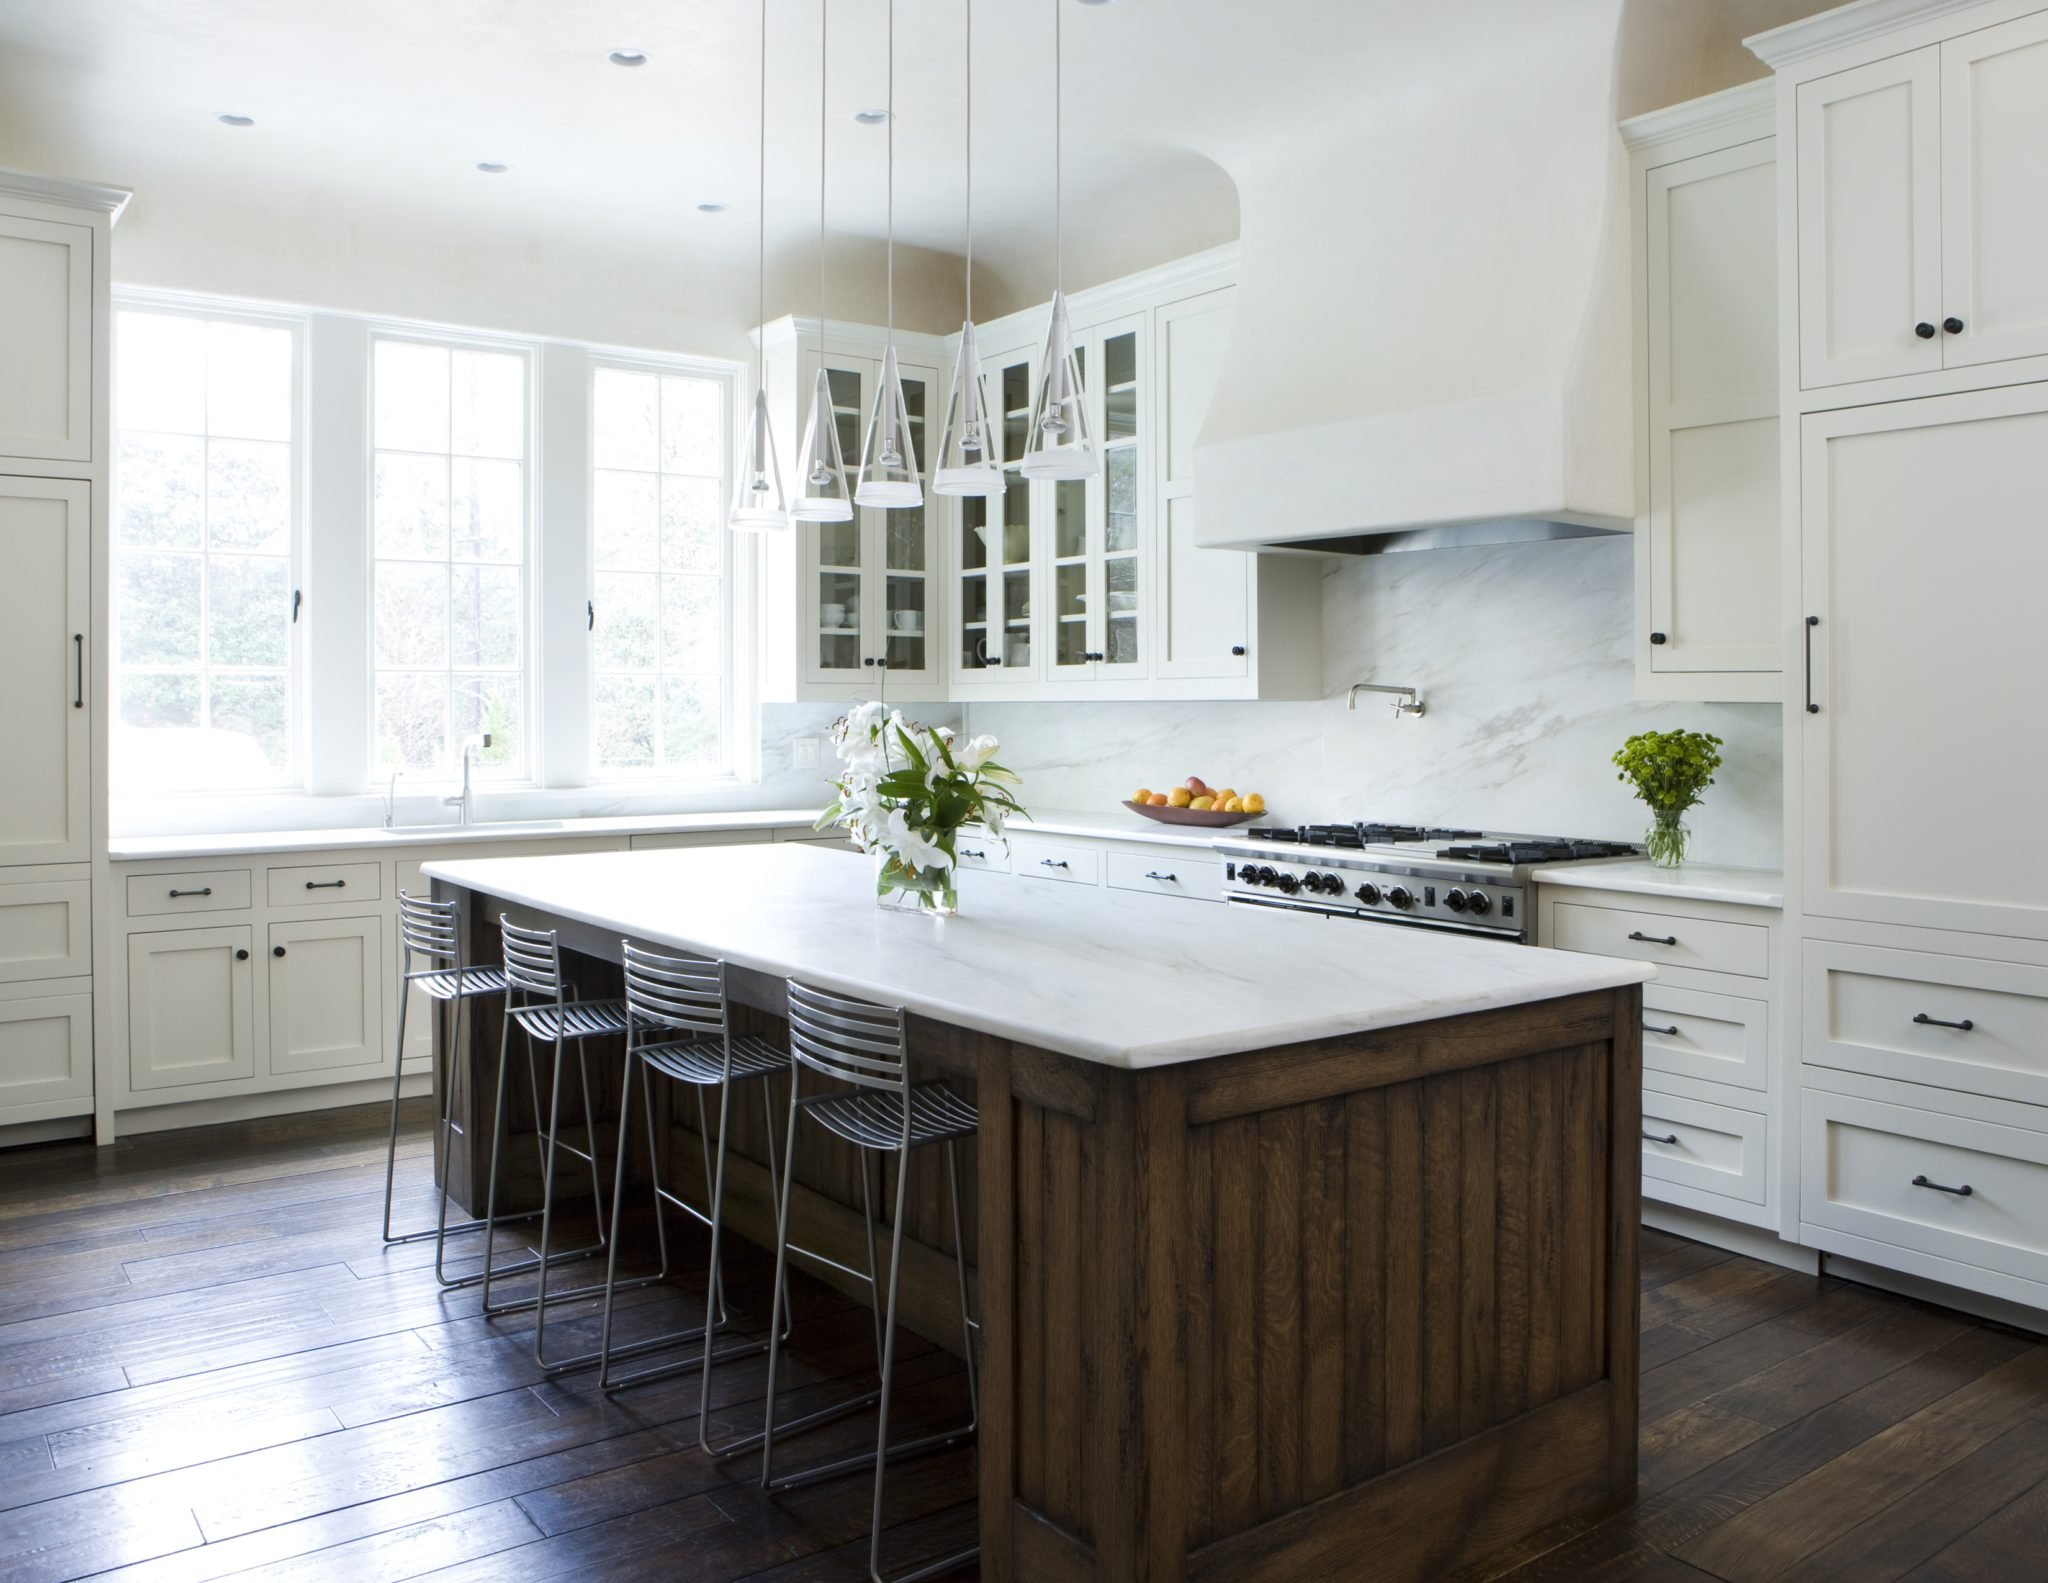 Large kitchen with wood floors and large islandby James Michael Howard